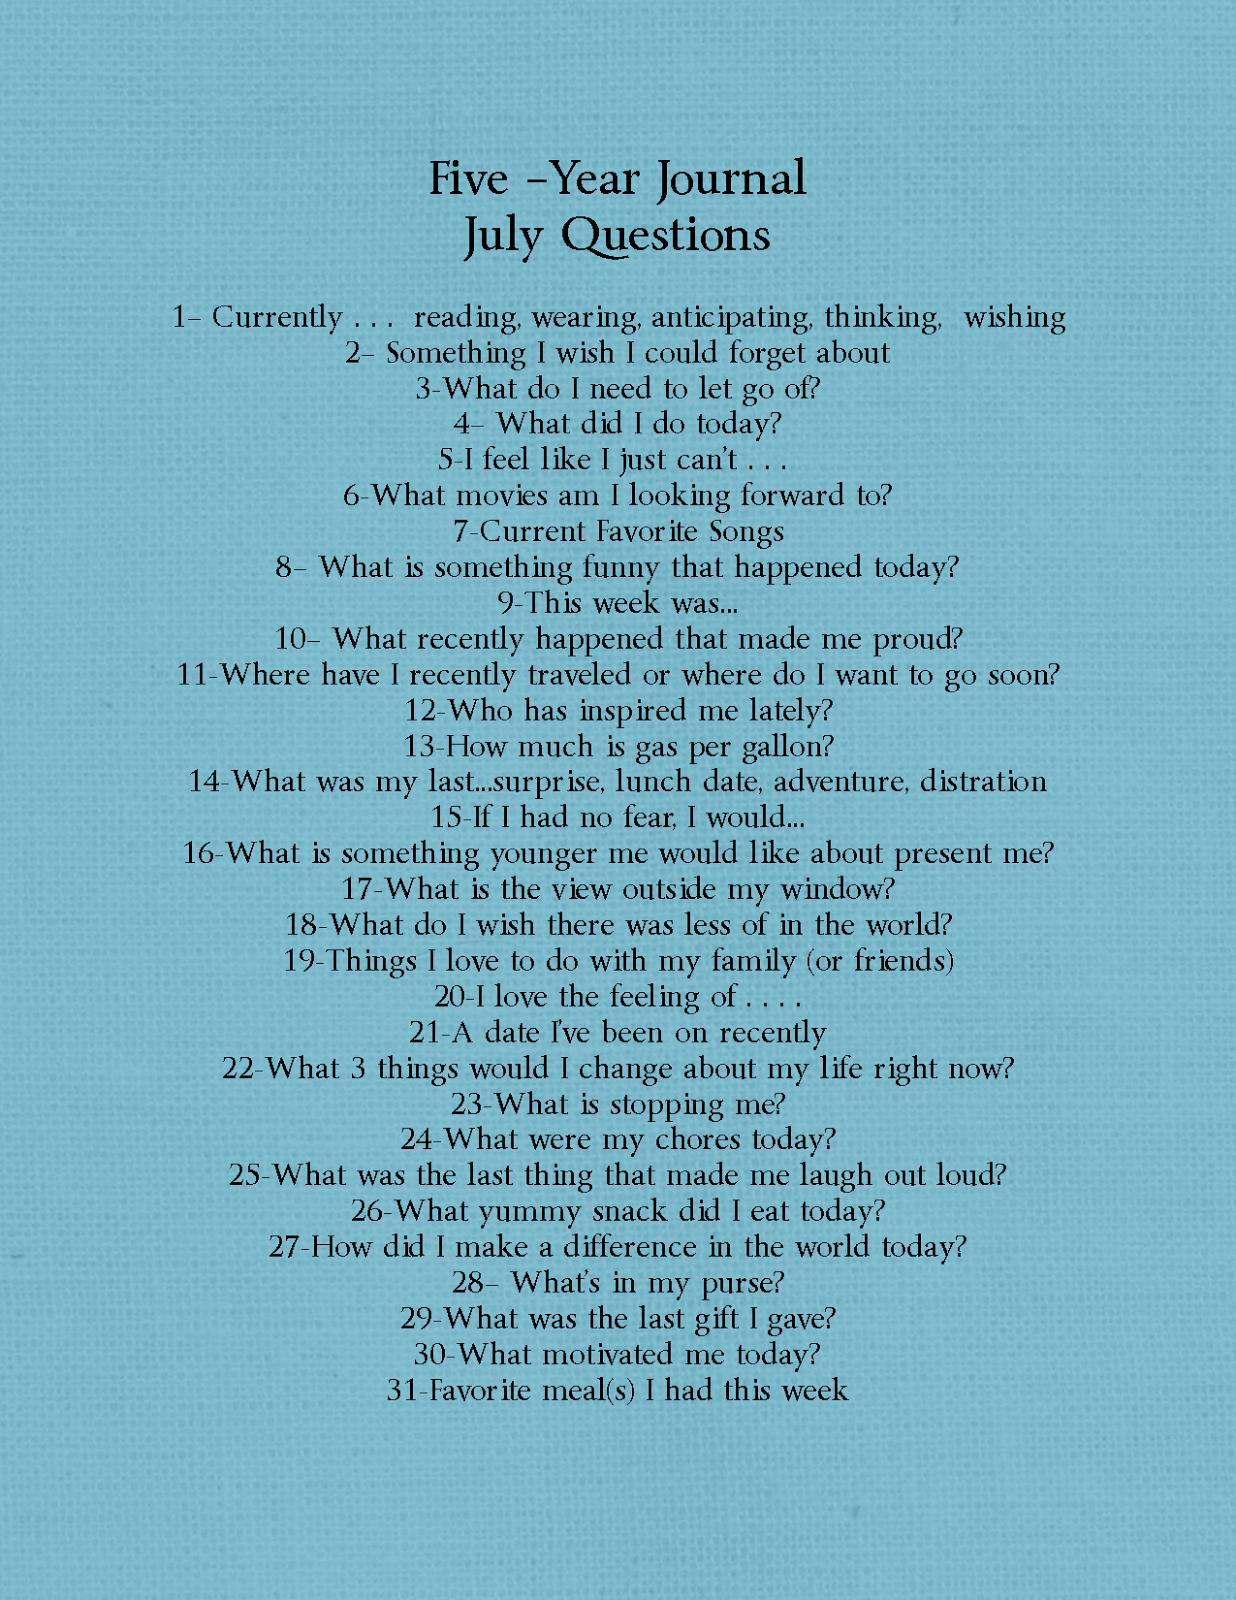 five year journal questions cupofdelight pot com five year journal questions cupofdelight pot com